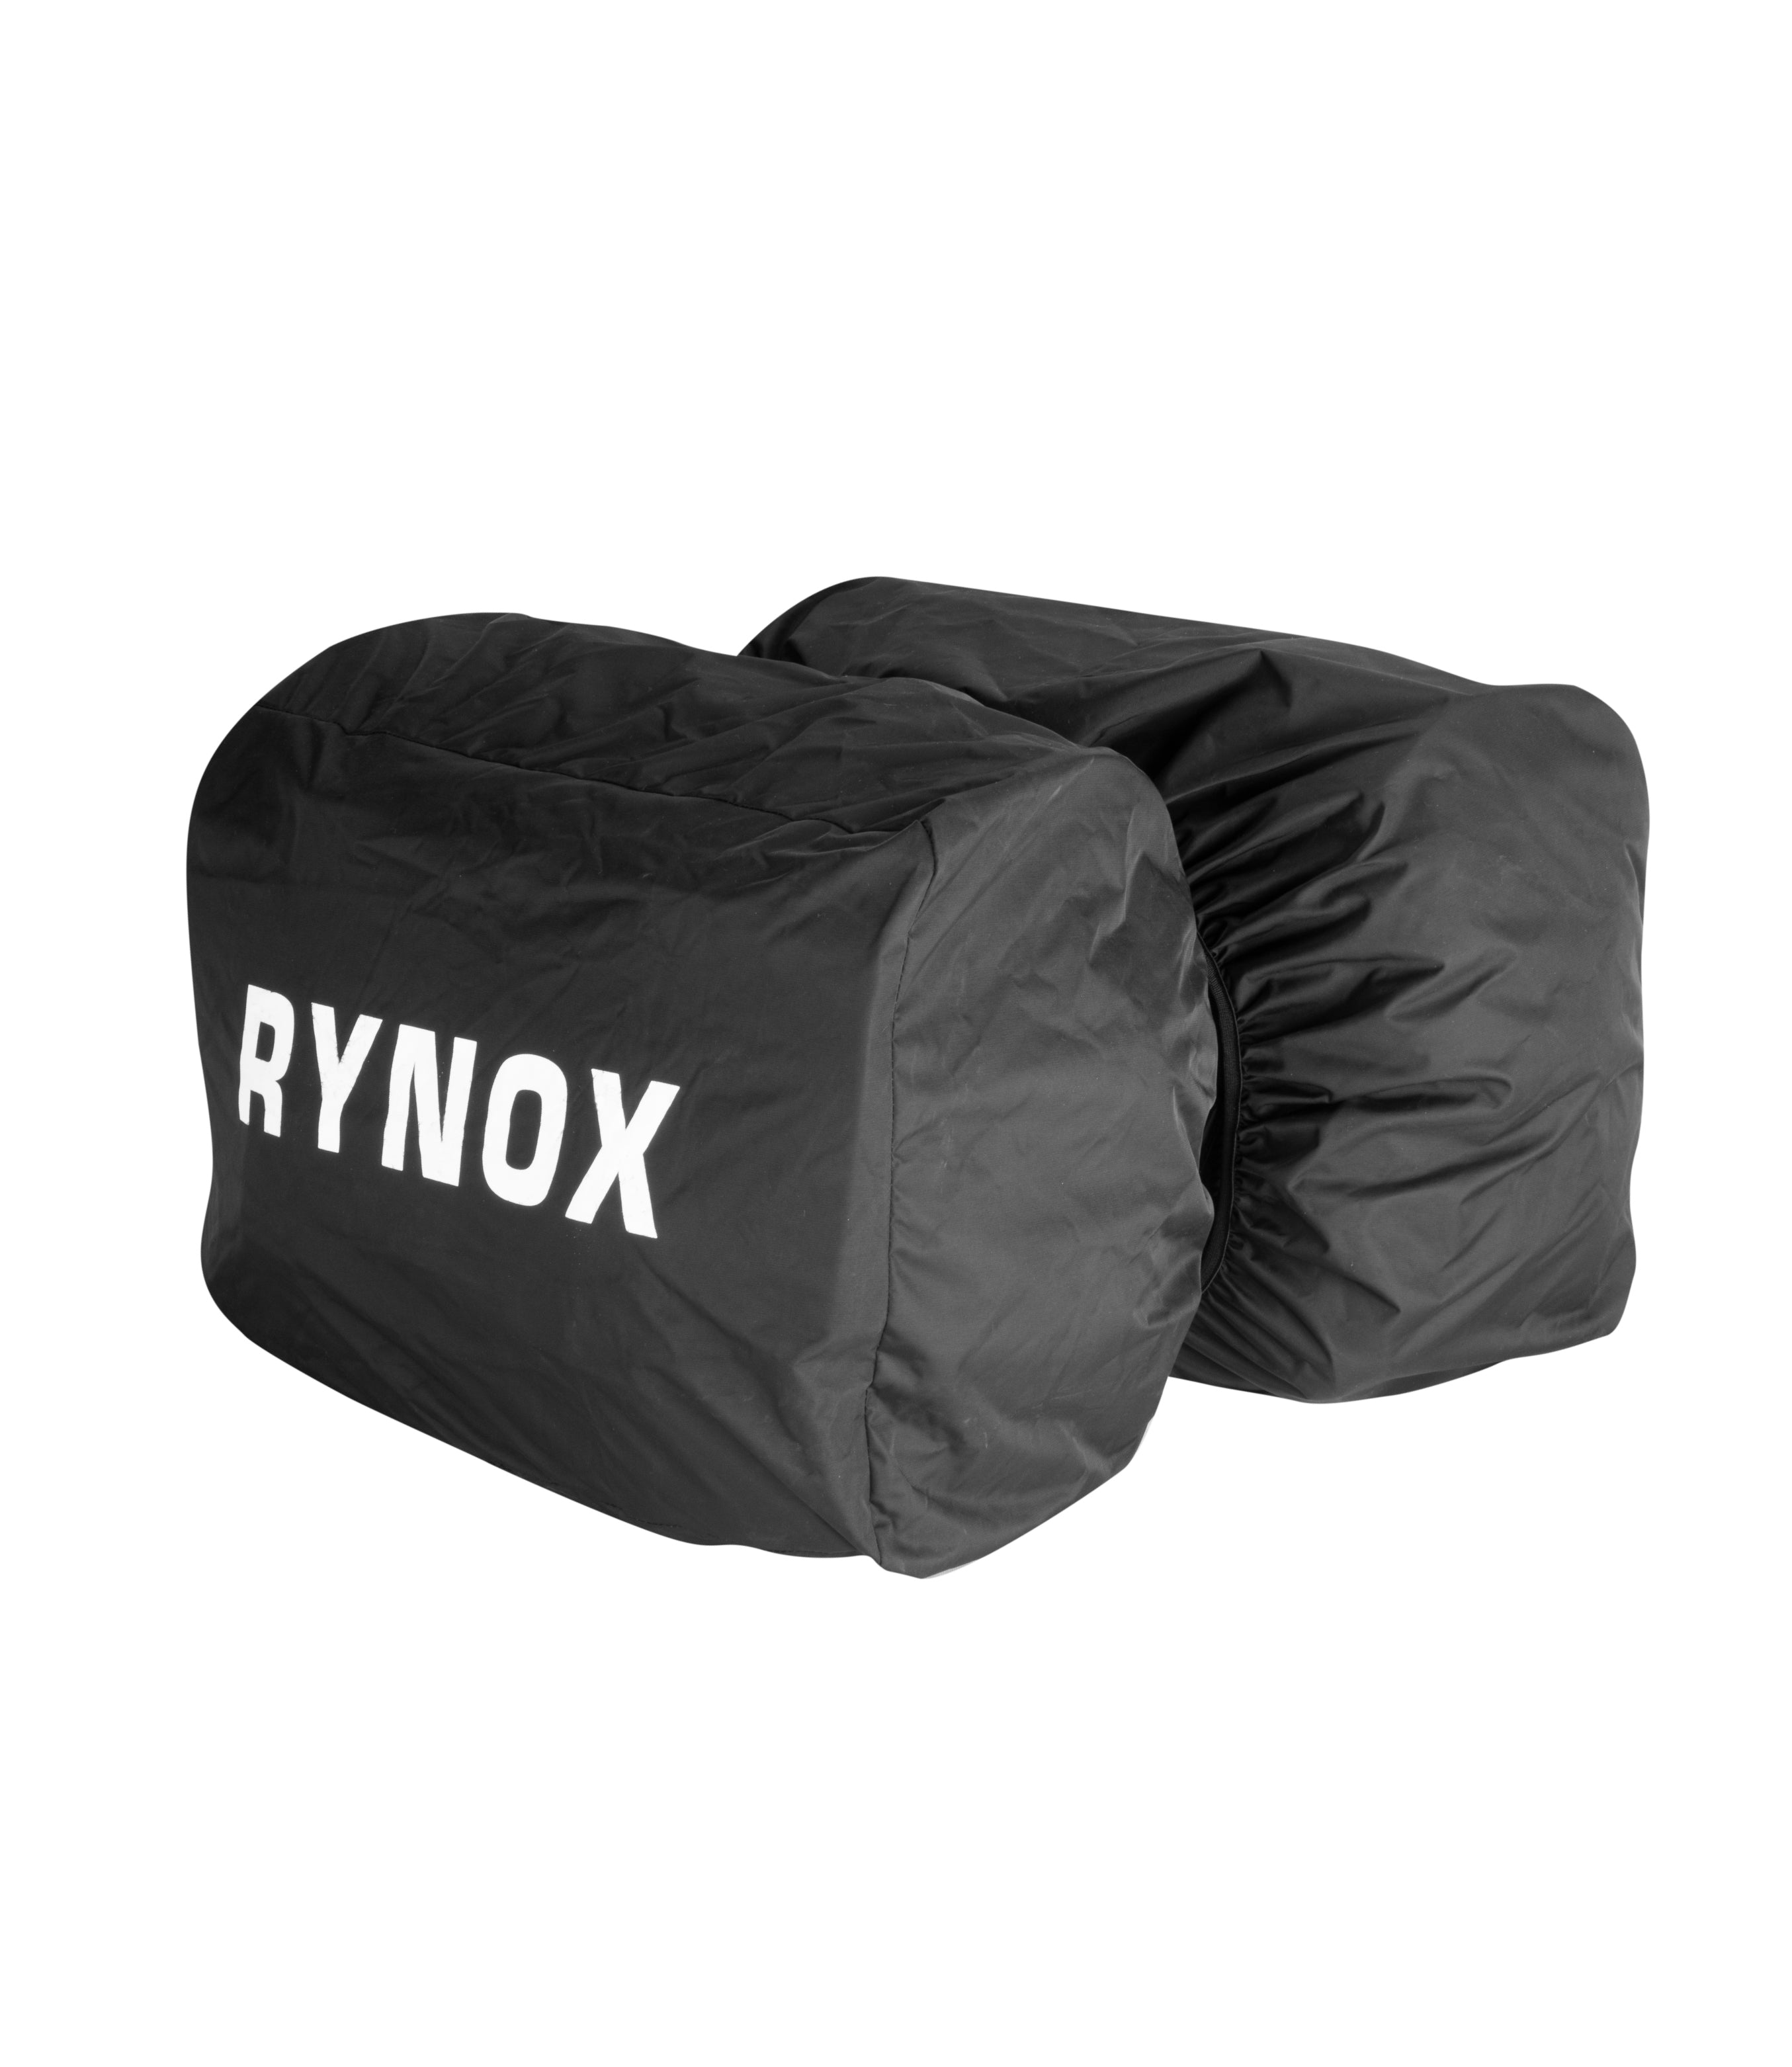 DRYSTACK MUCK COVER SET - Rynox Gears -